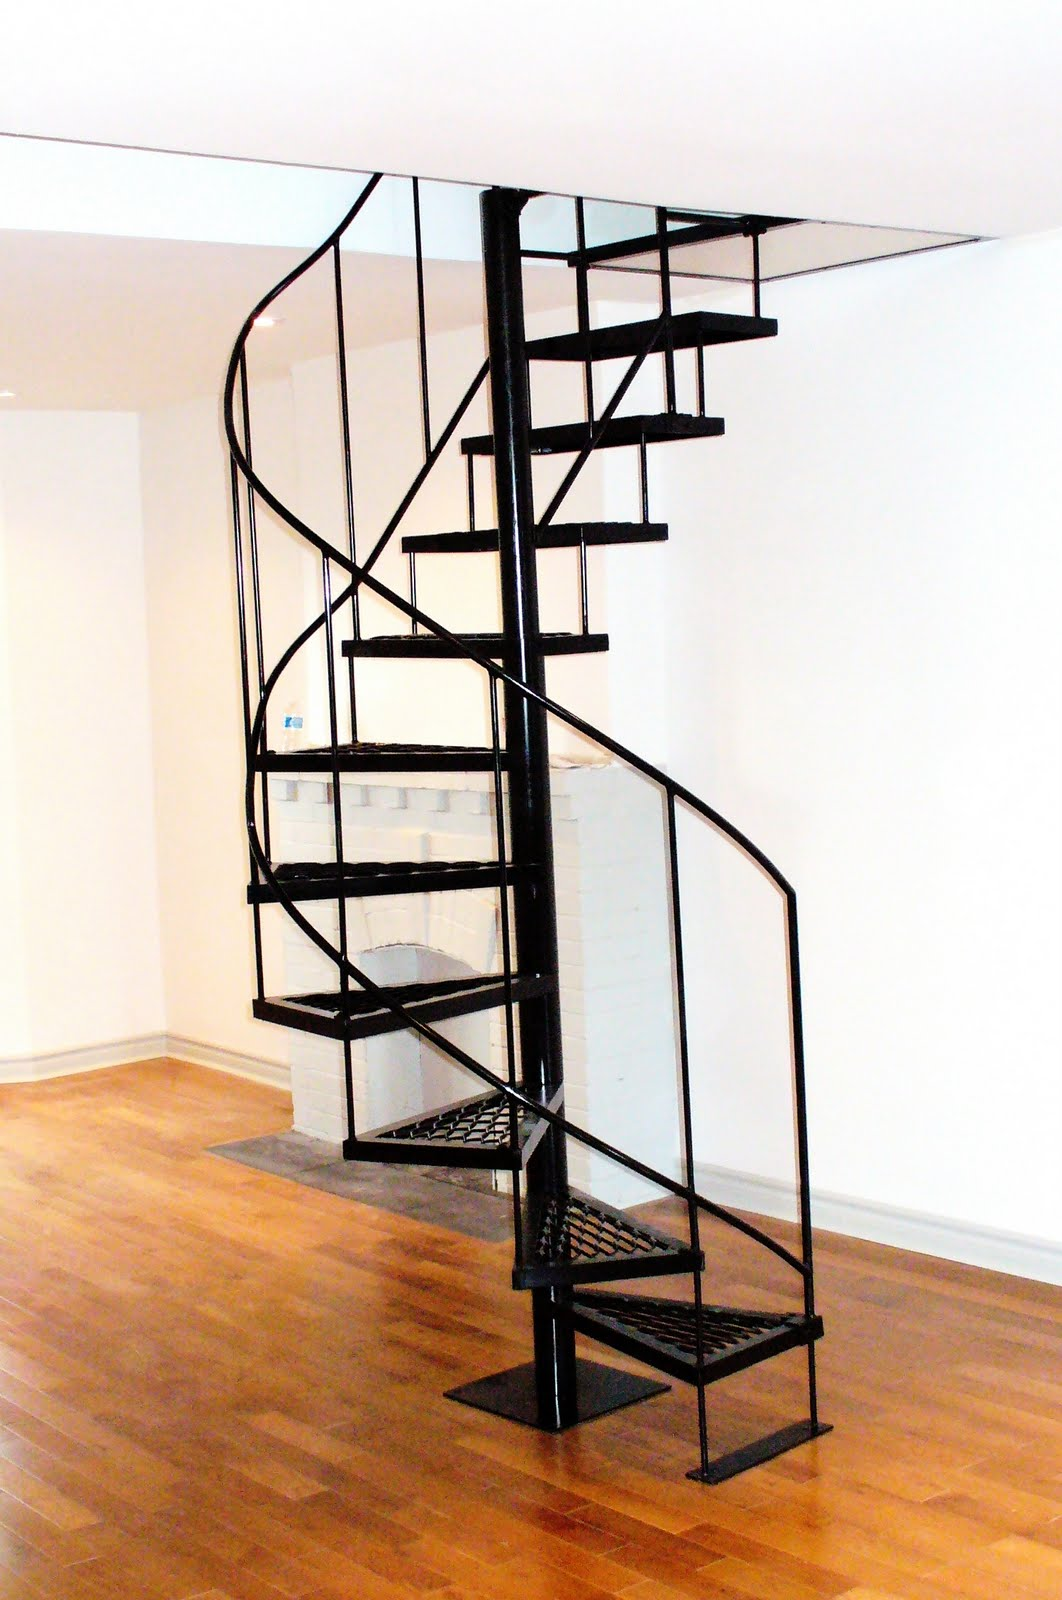 Wrought iron from julian wrought iron spiral staircases - Spiral staircase wrought iron ...